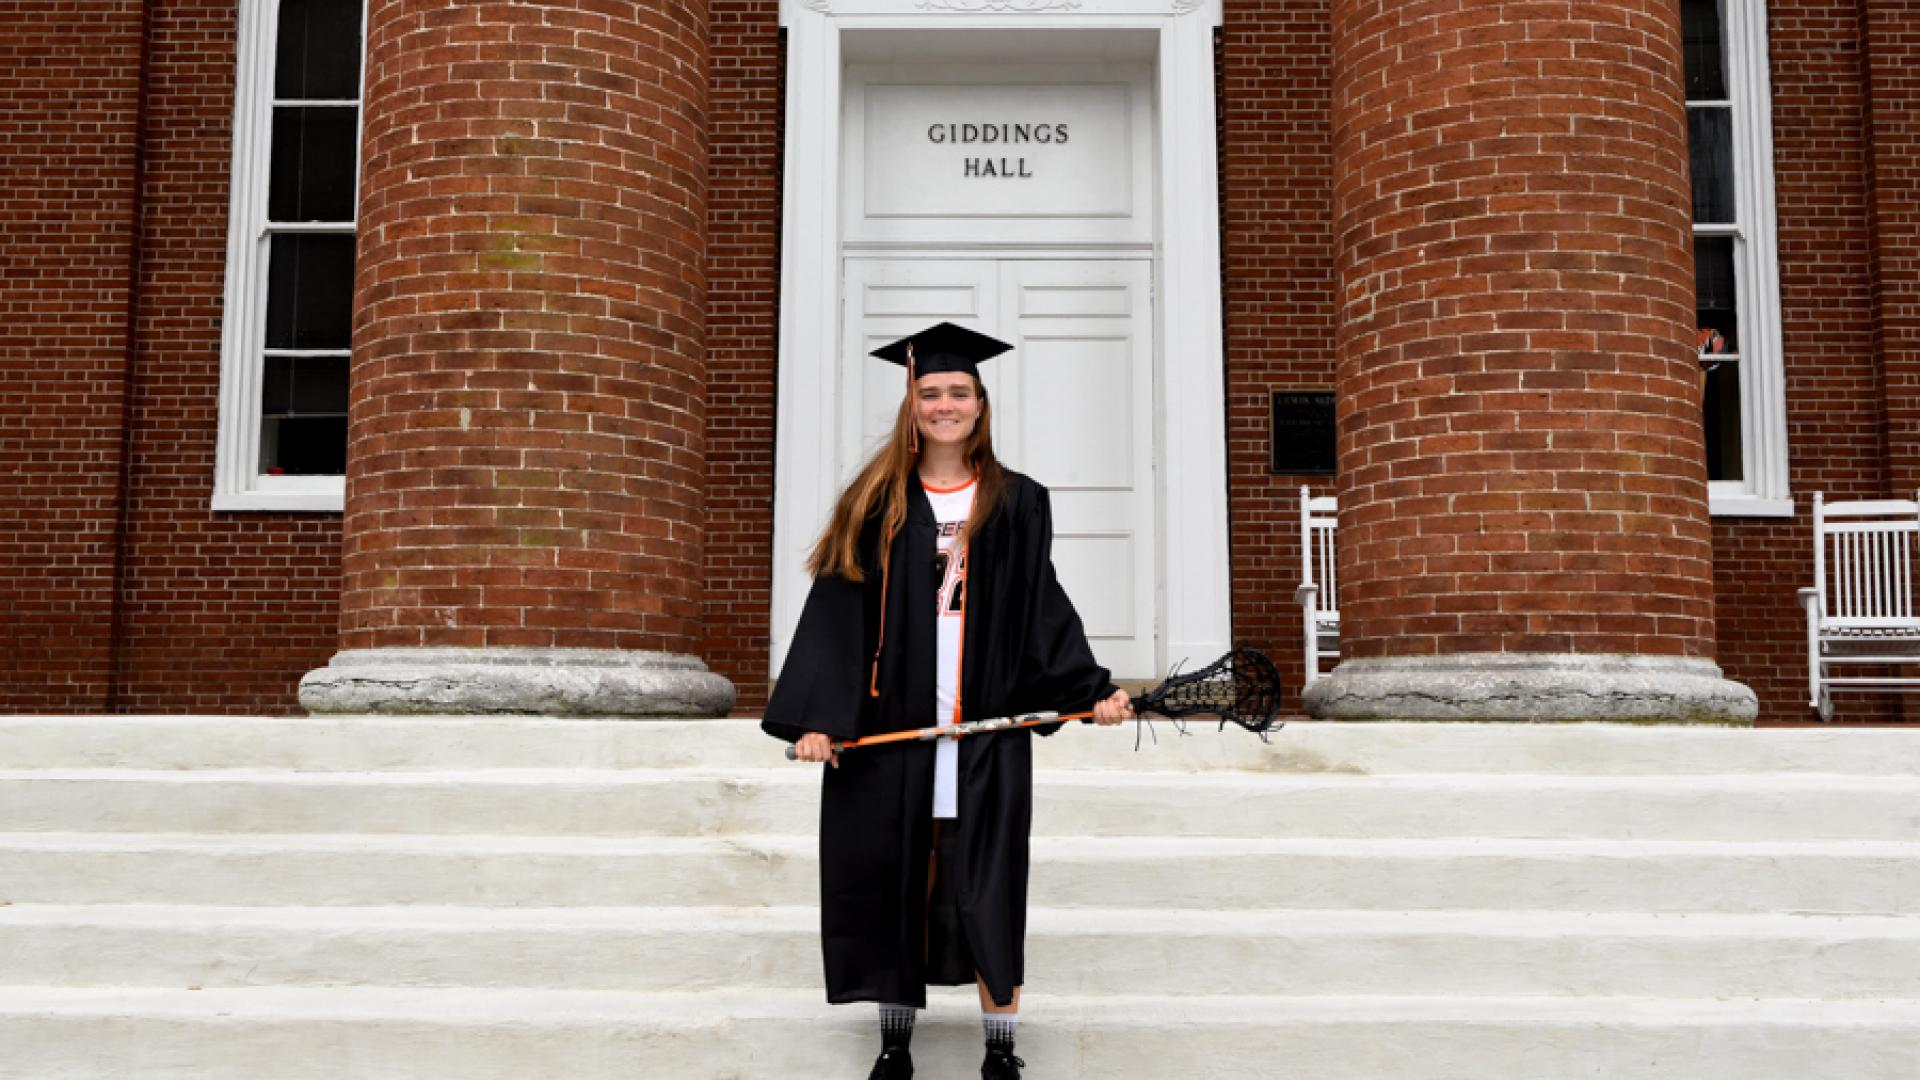 Avery Blackmon in cap and gown on steps of Giddings